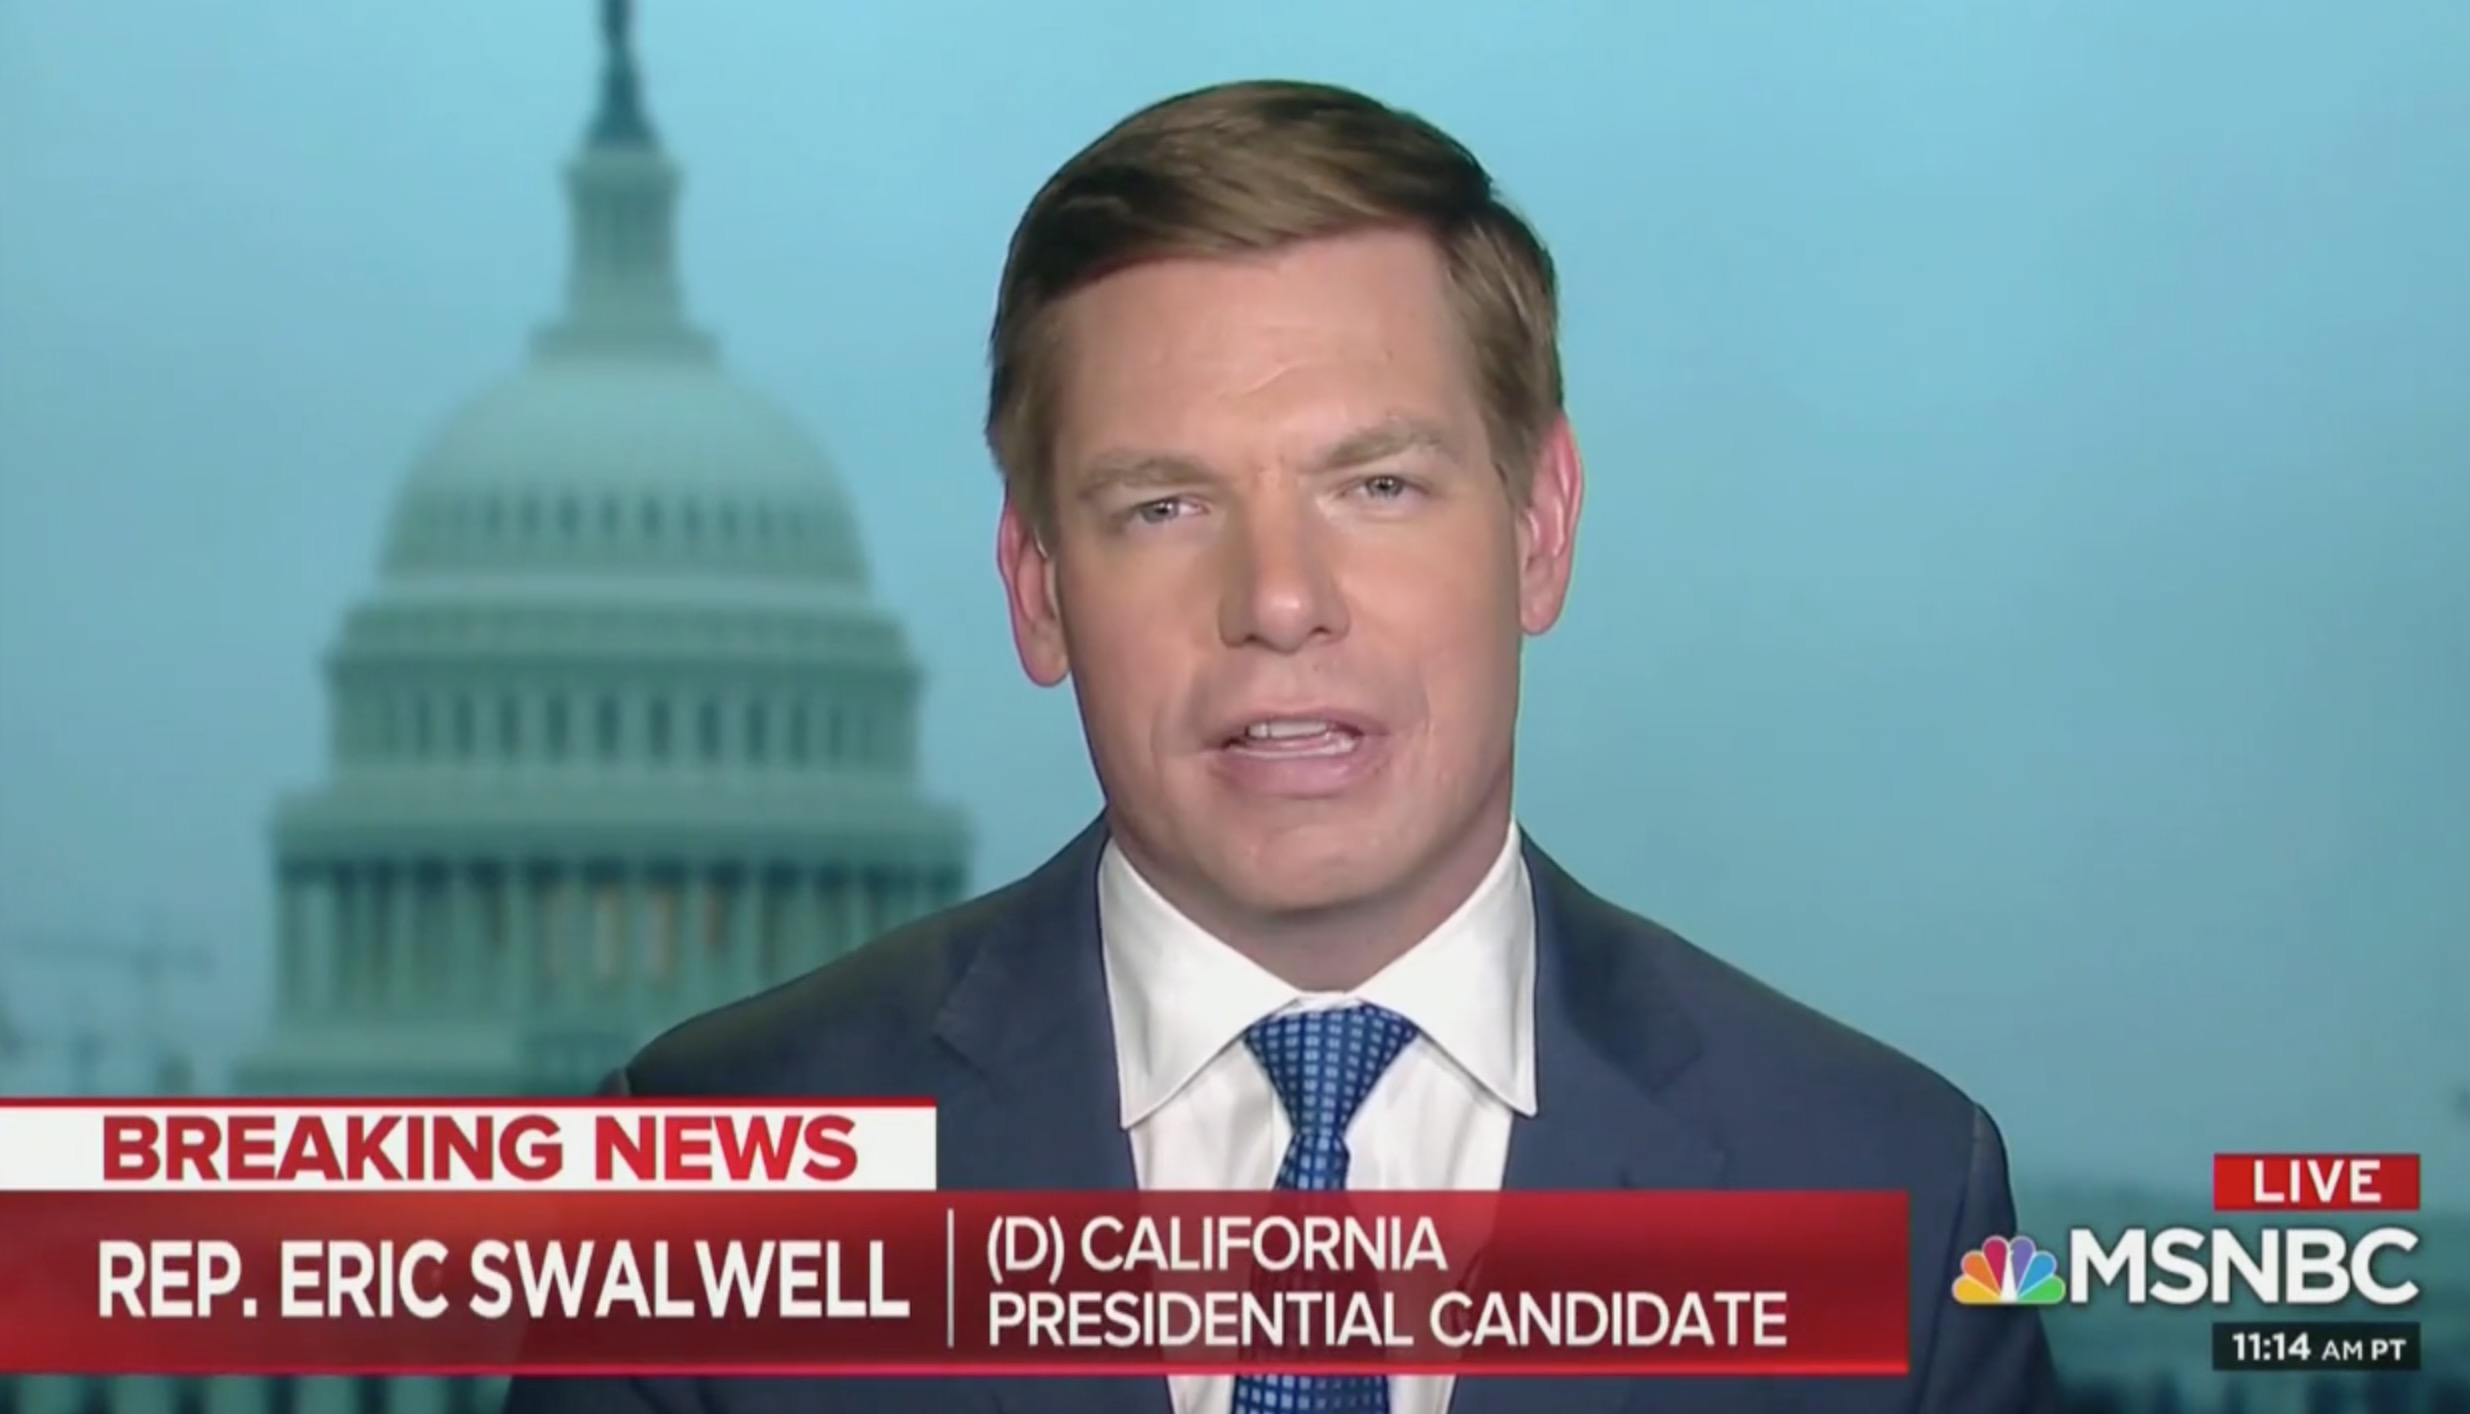 Rep. Swalwell Responds to Death Threats Against Him: This Proves We Need More Gun Control